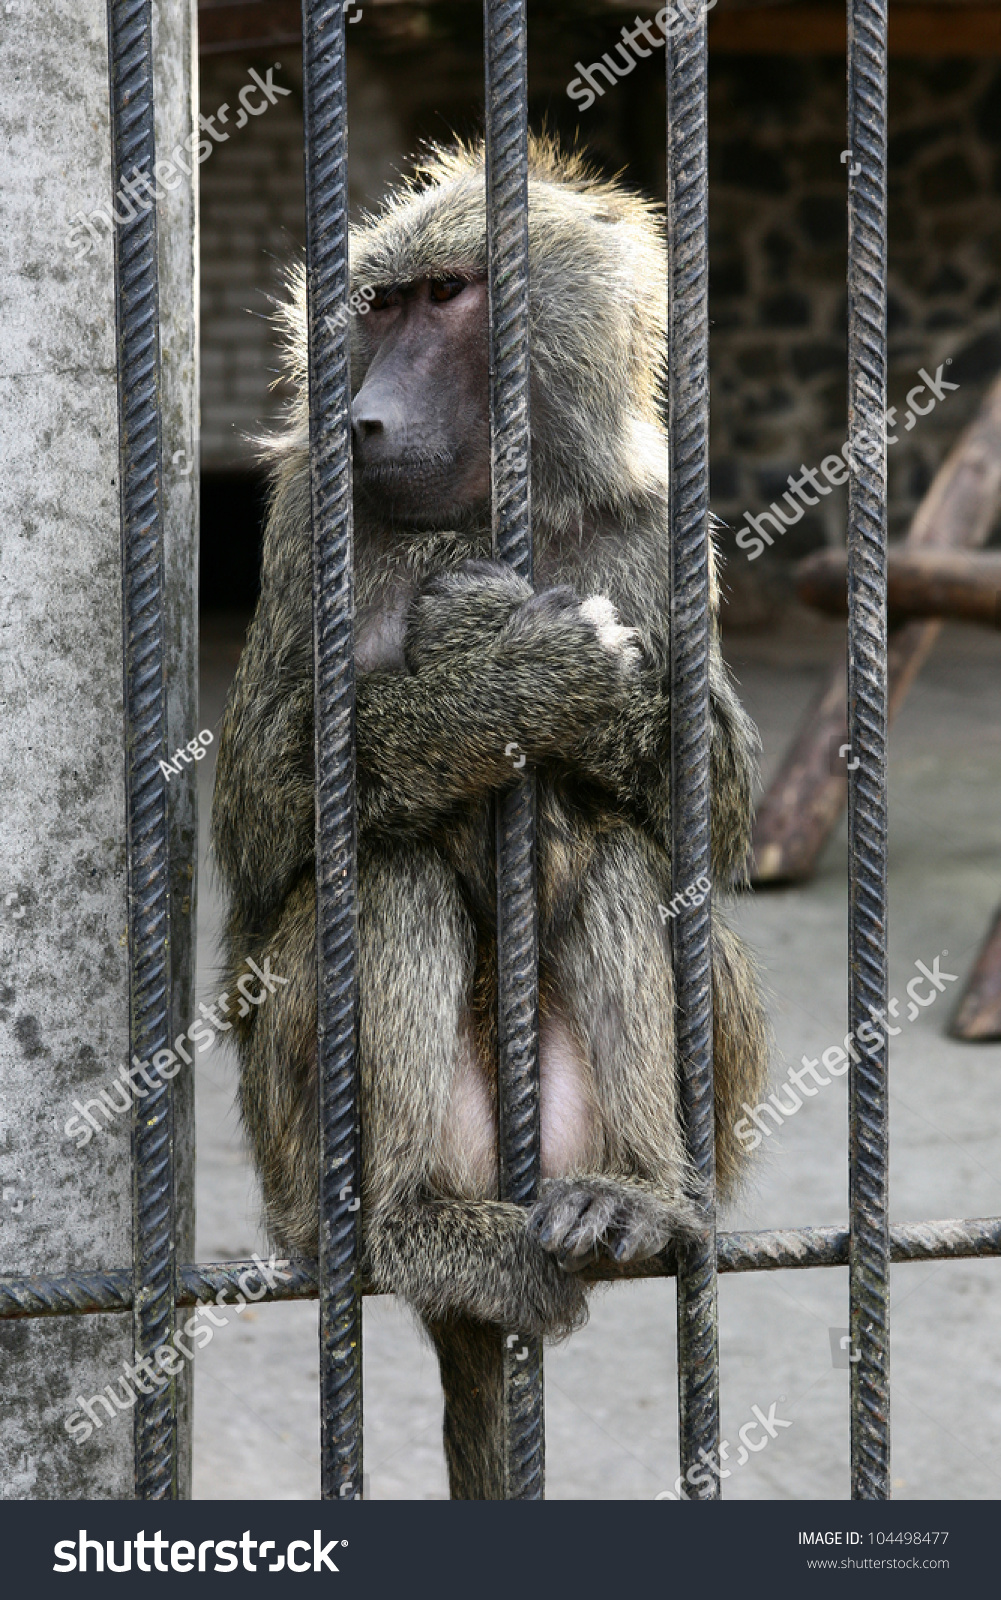 Baboon Simia Hamadryas Monkey Grimaces Cage Stock Photo (Royalty ...